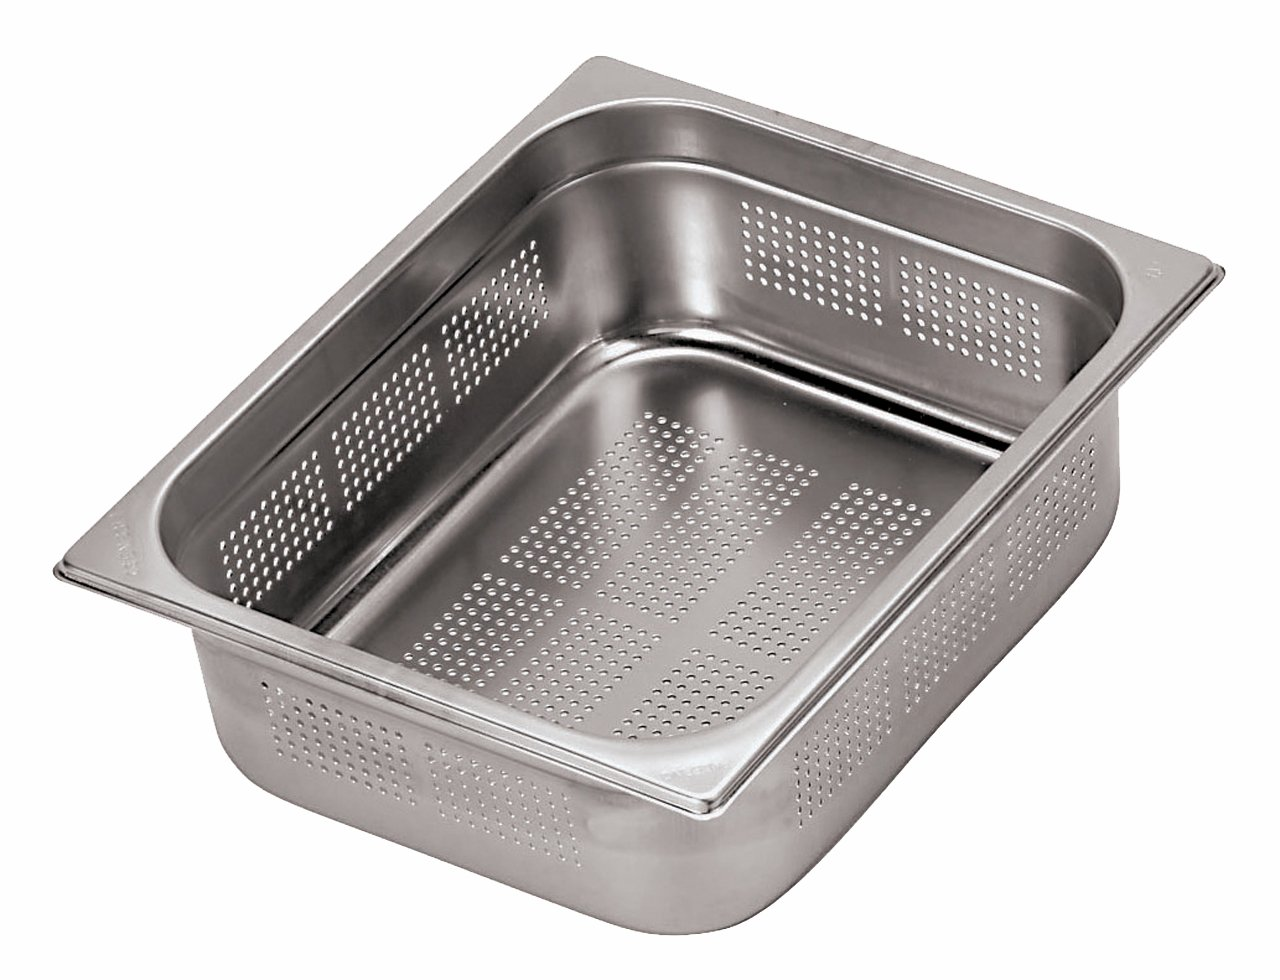 Paderno World Cuisine 12 1/2 inches by 10 1/2 inches Stainless-steel Perforated Hotel Pan - 1/2 (depth: 6 inches)